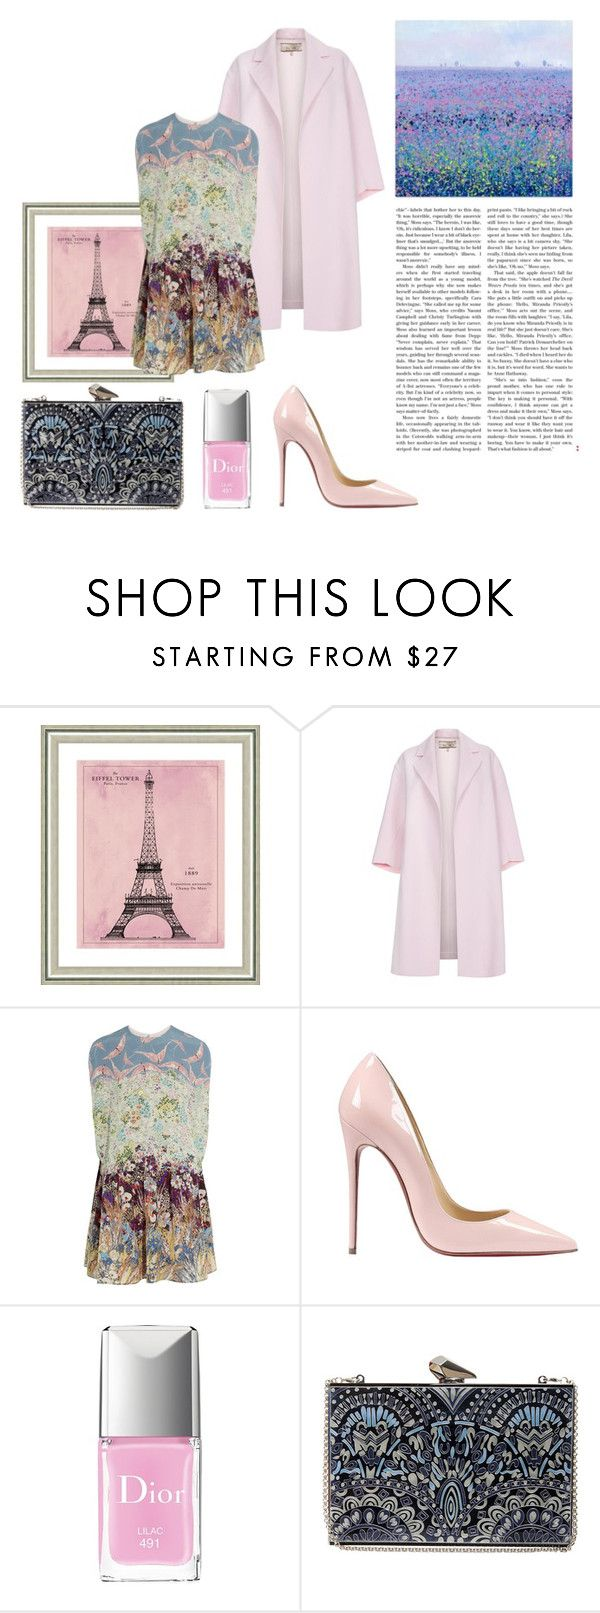 """Без названия #23"" by vera-almazova on Polyvore featuring мода, Vintage Print Gallery, Paul Smith, Valentino, Christian Louboutin, Christian Dior, KOTUR, women's clothing, women's fashion и women"